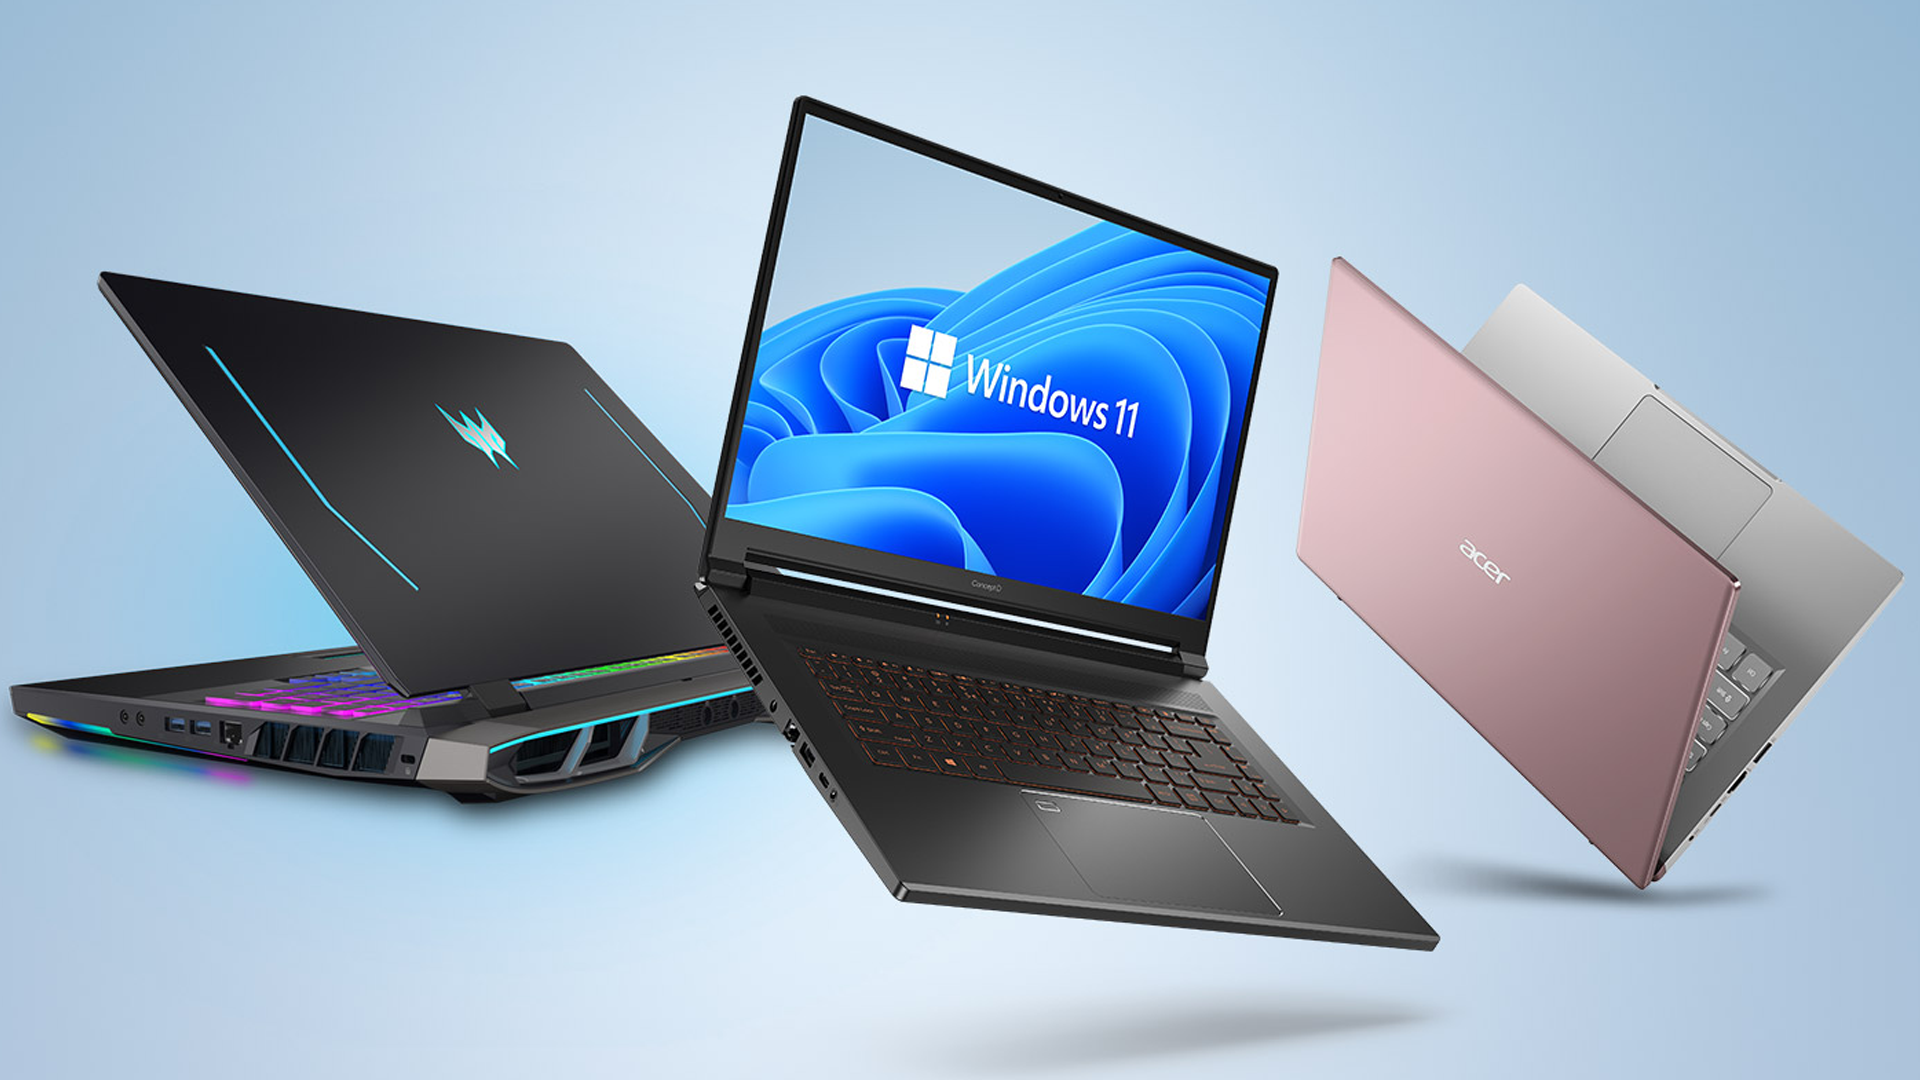 Three laptops on a light blue screen on with Windows 11 on it.